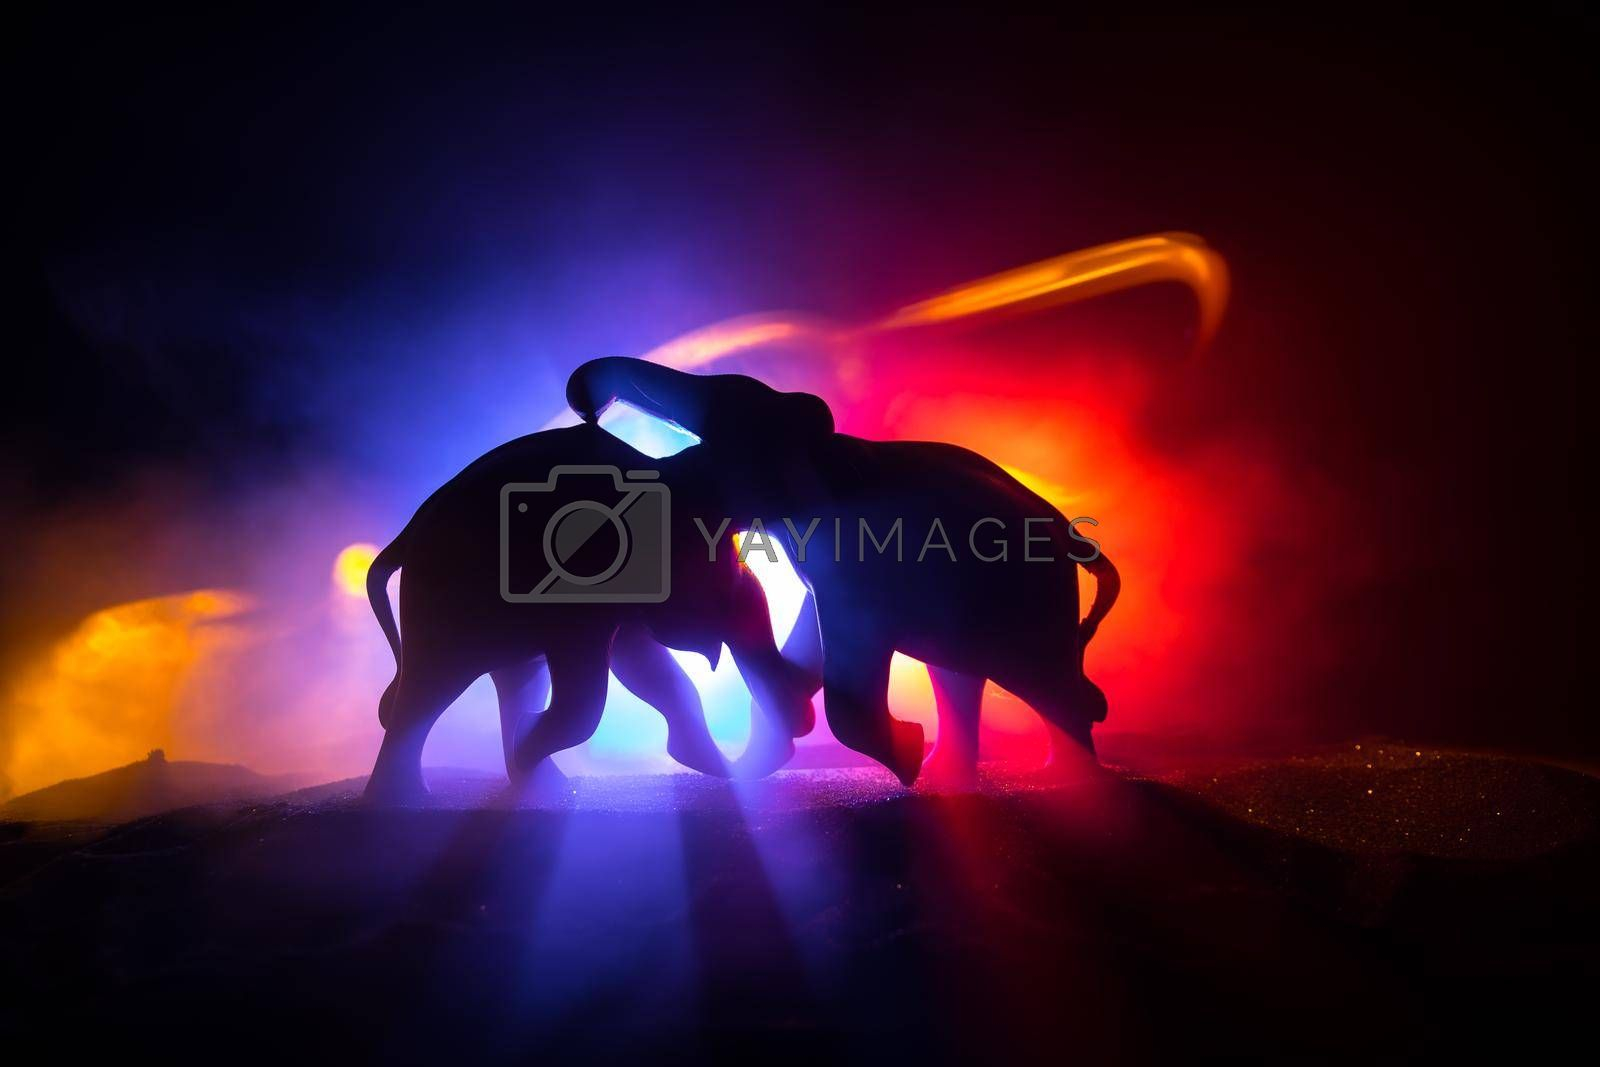 Elephant fighing silhouettes on fire background or Two elephant bulls interact and communicate while play fighting. Creative table decoration with colorful backlight with fog. Selective focus